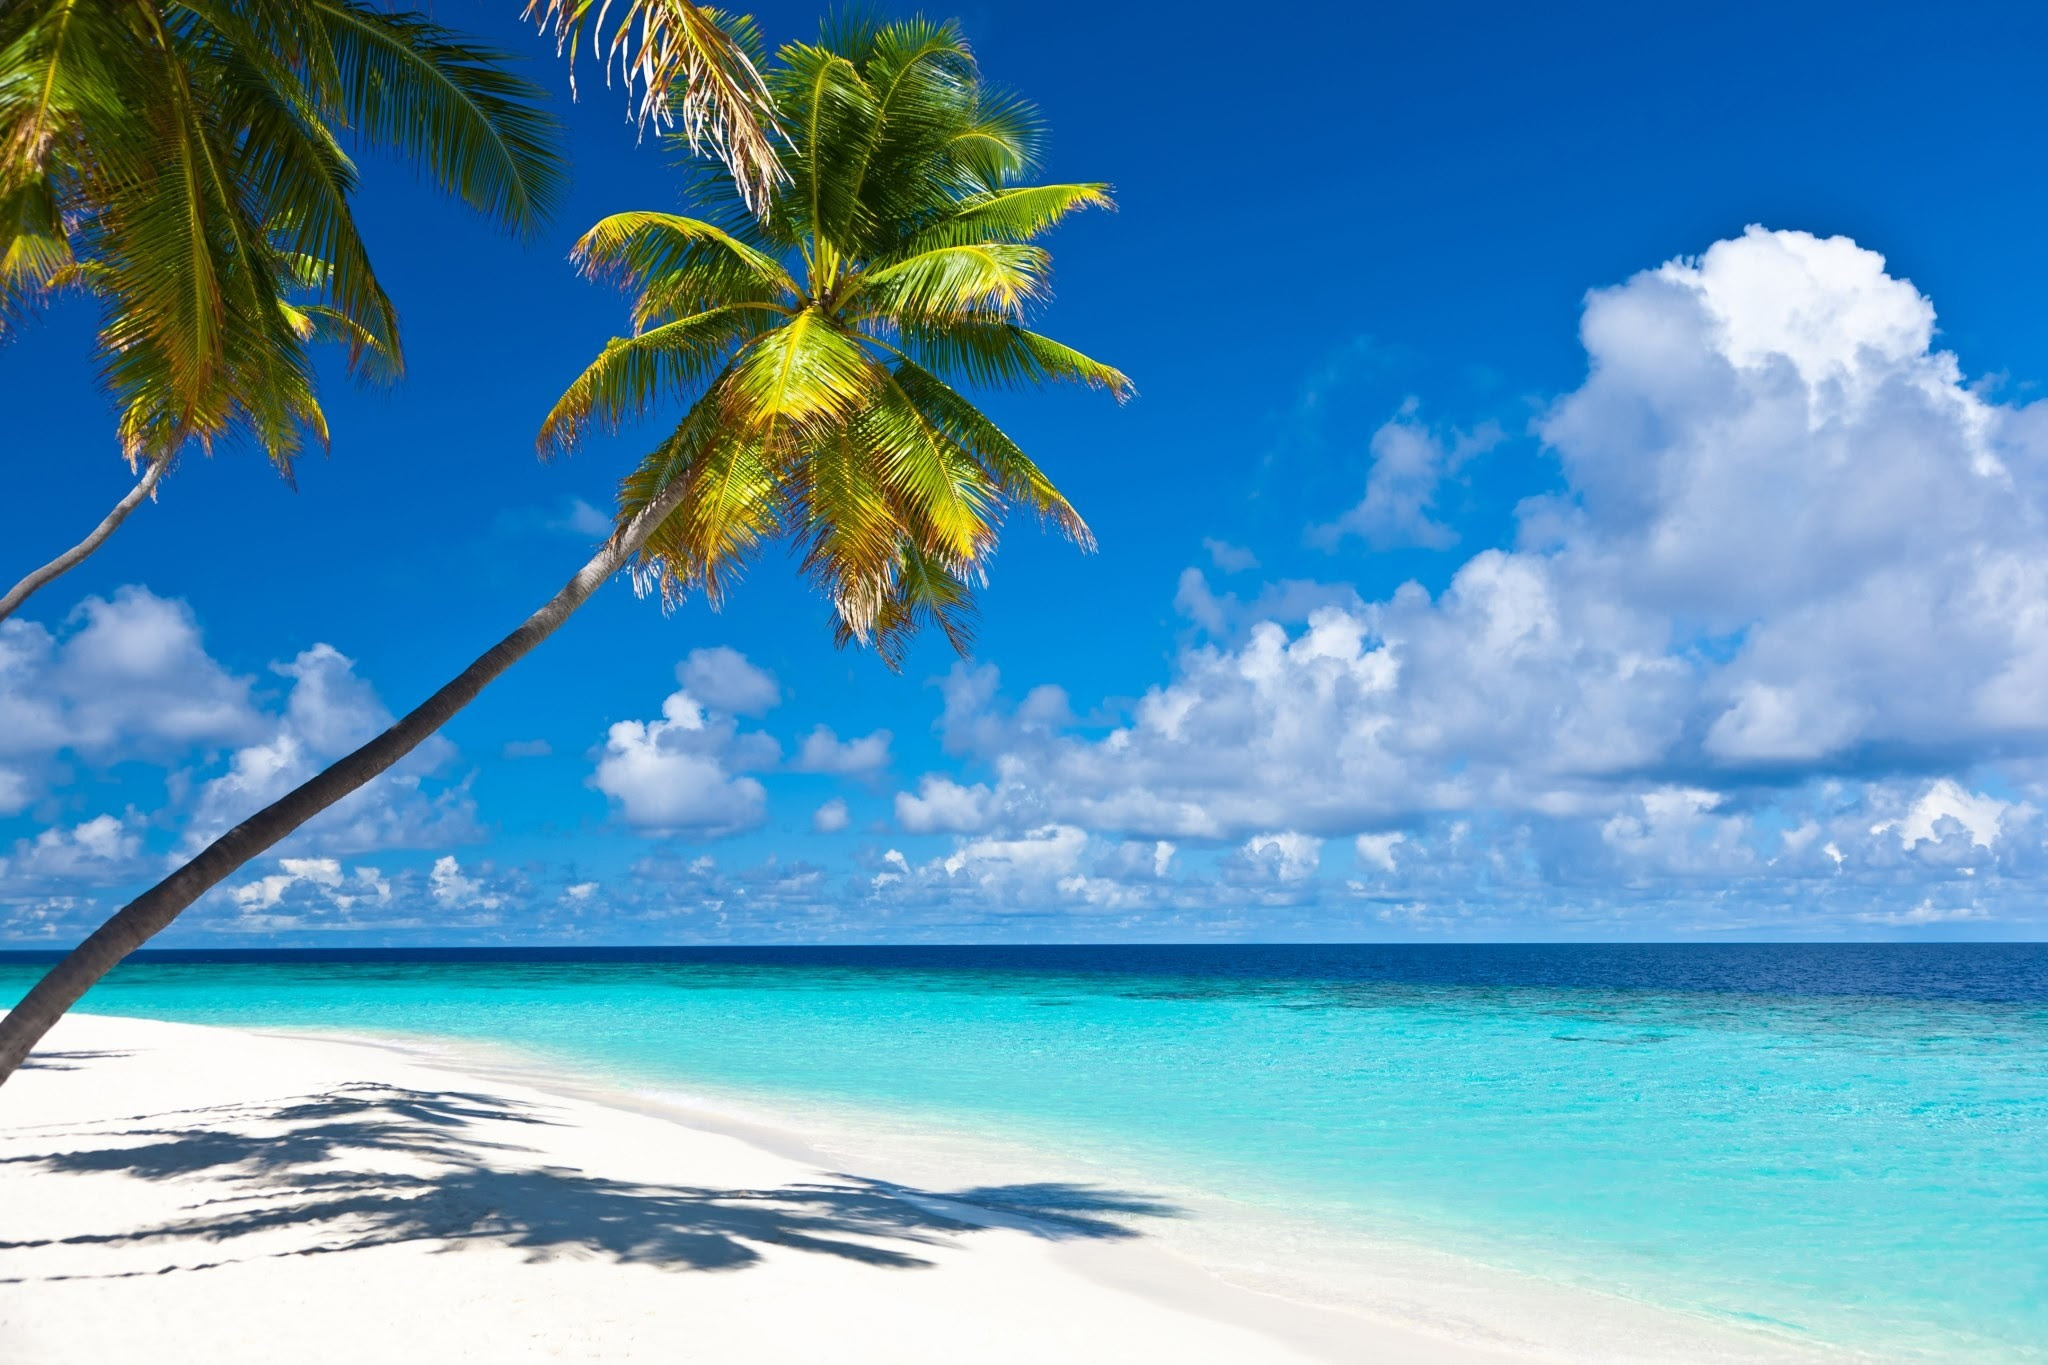 Caribbean Beach Pictures Wallpaper 70 Images Huge Free Wallpaper Download